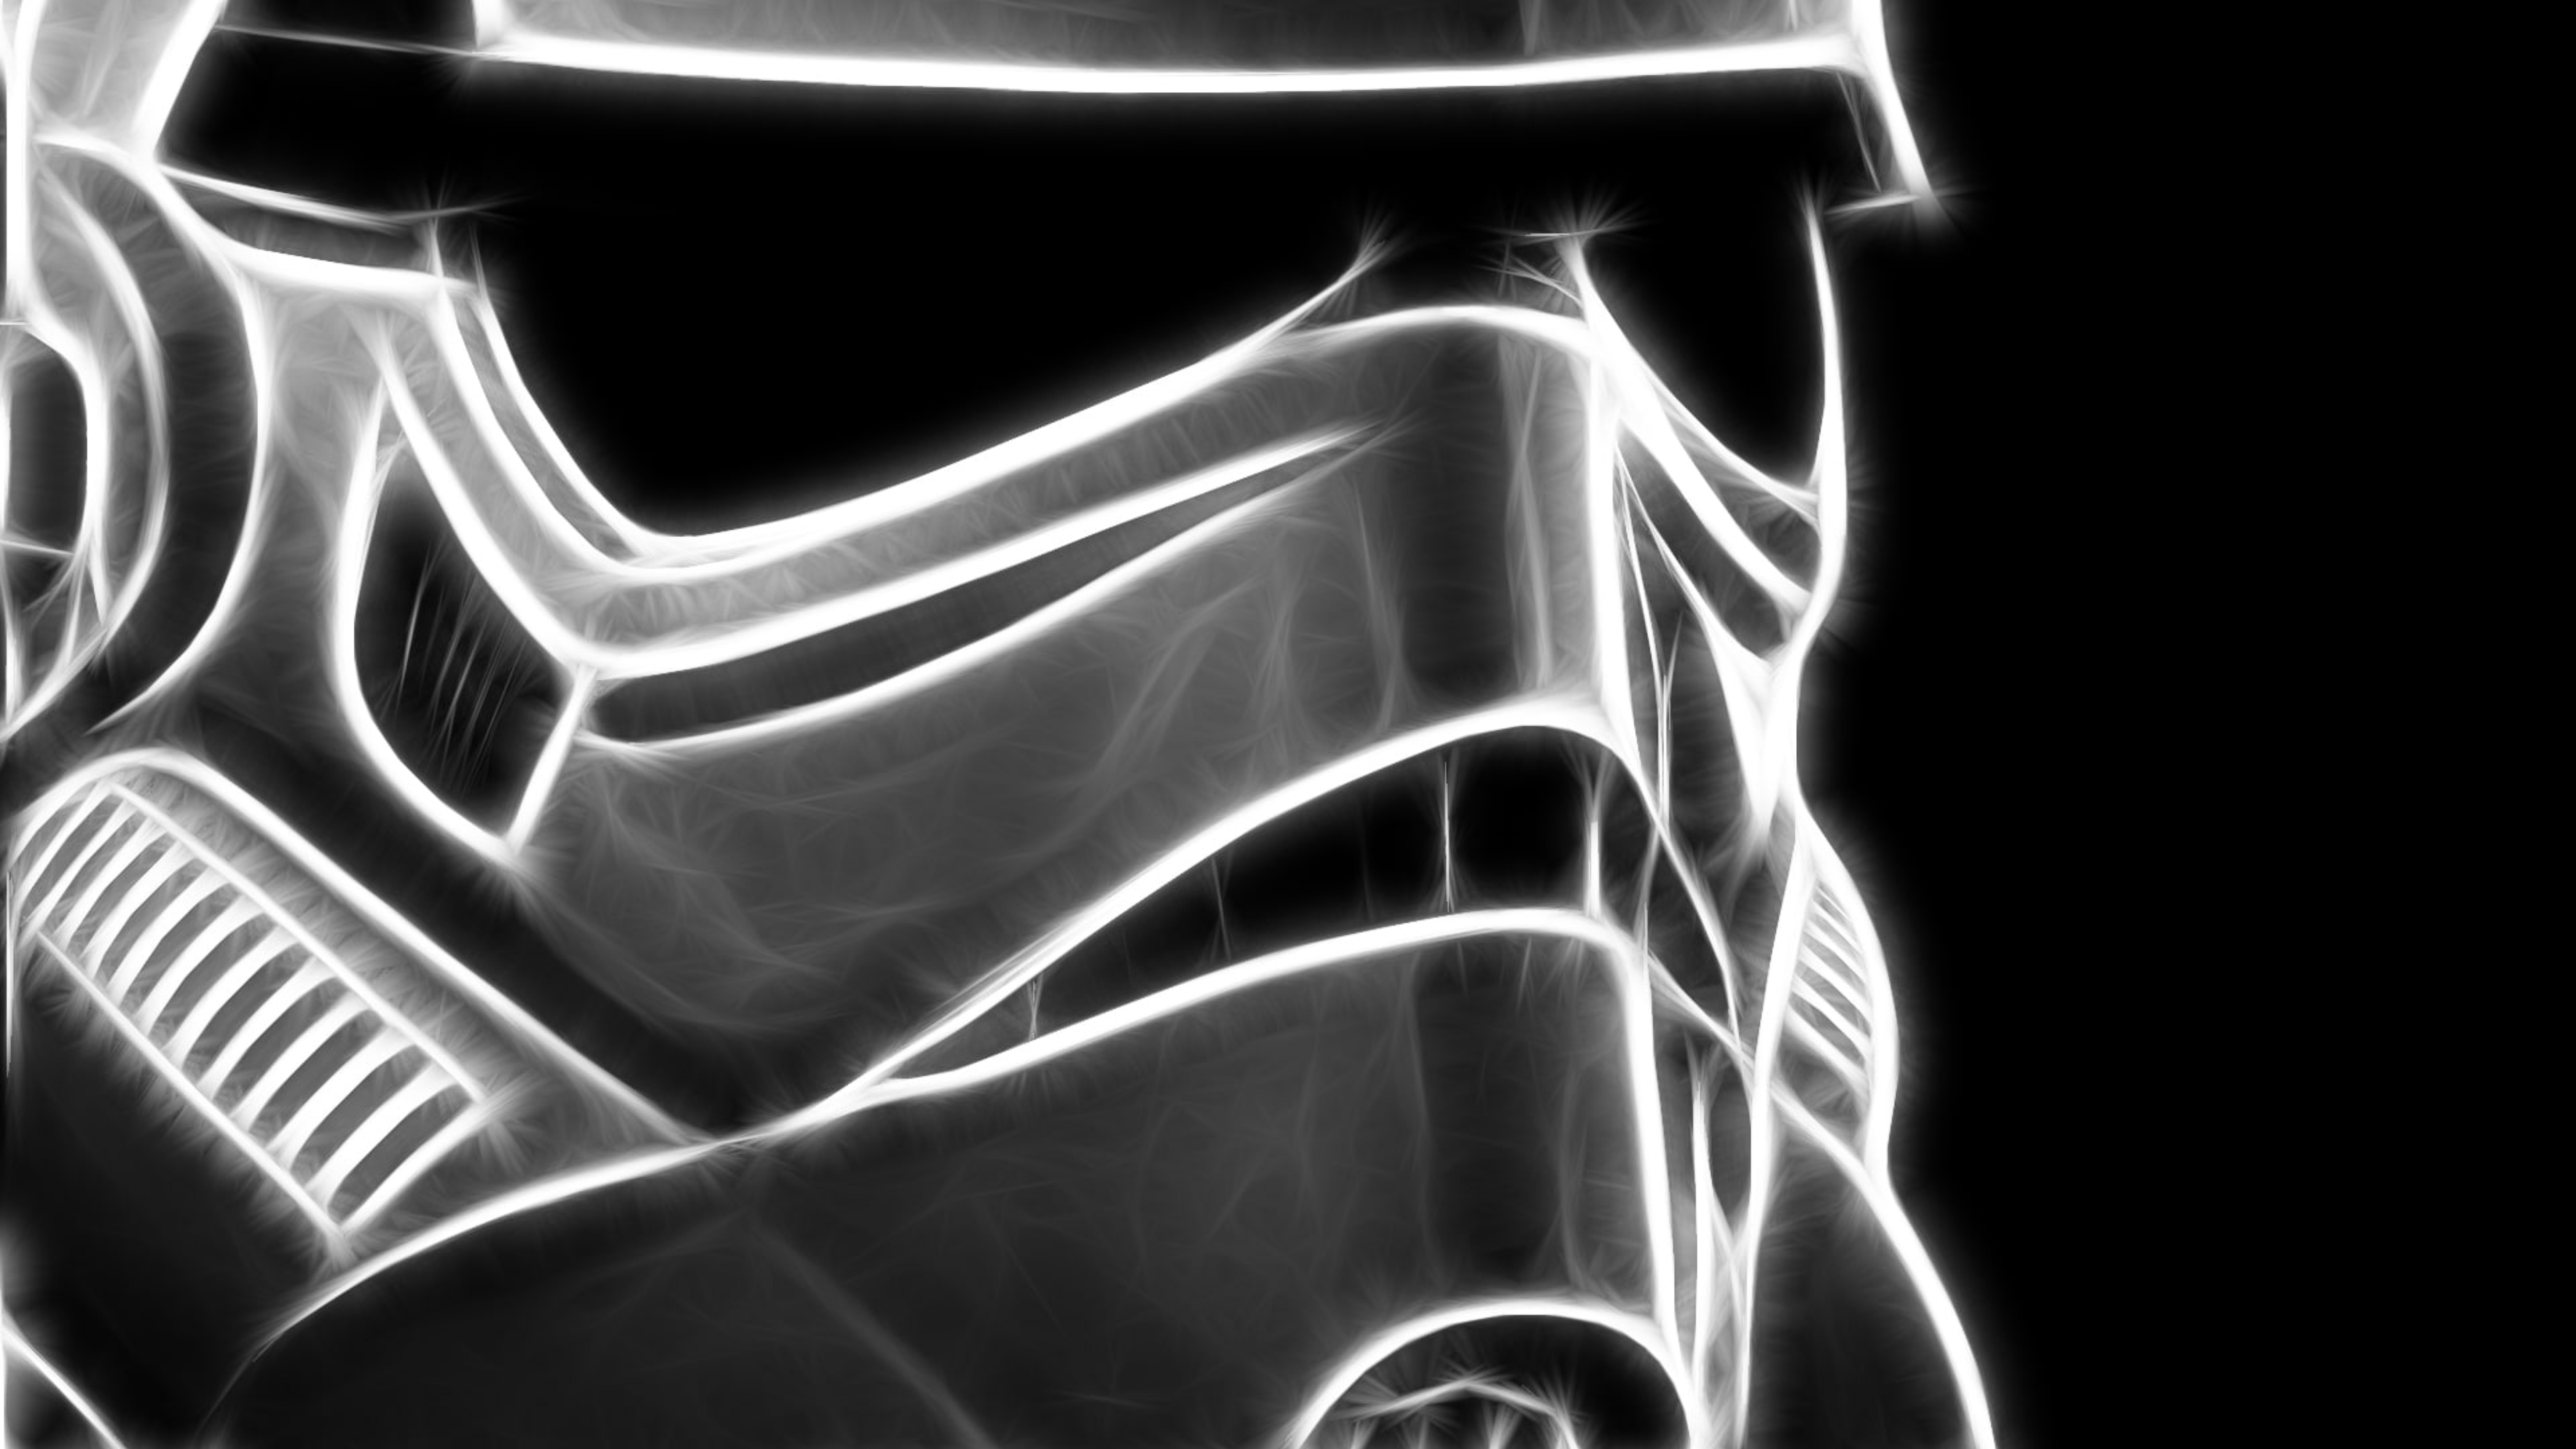 Trooper 4k Wallpapers For Your Desktop Or Mobile Screen Free And Easy To Download